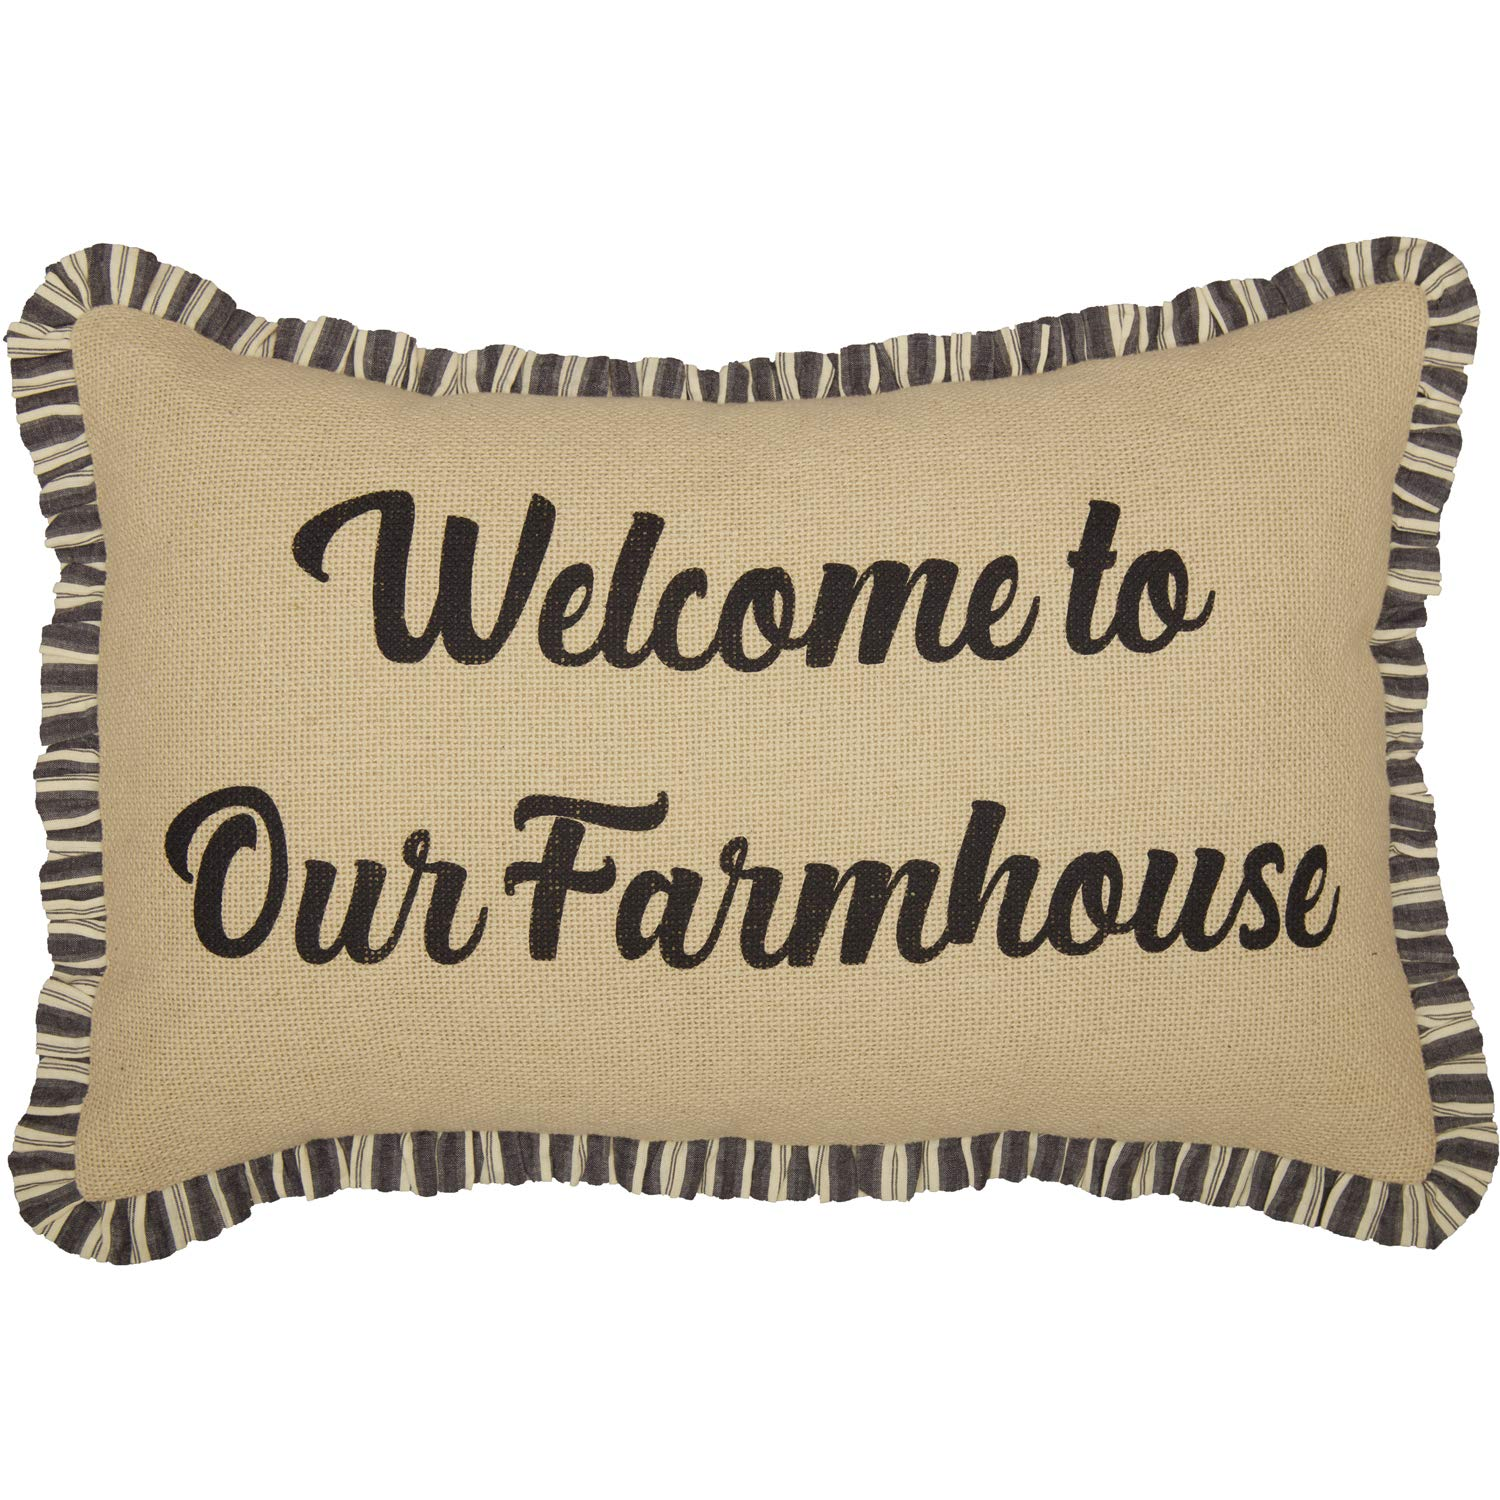 VHC Brands Ashmont Welcome to Our Farmhouse Text Cotton Burlap Thanksgiving Bedding Stenciled 22x14 Filled Pillow, Antique Creme White